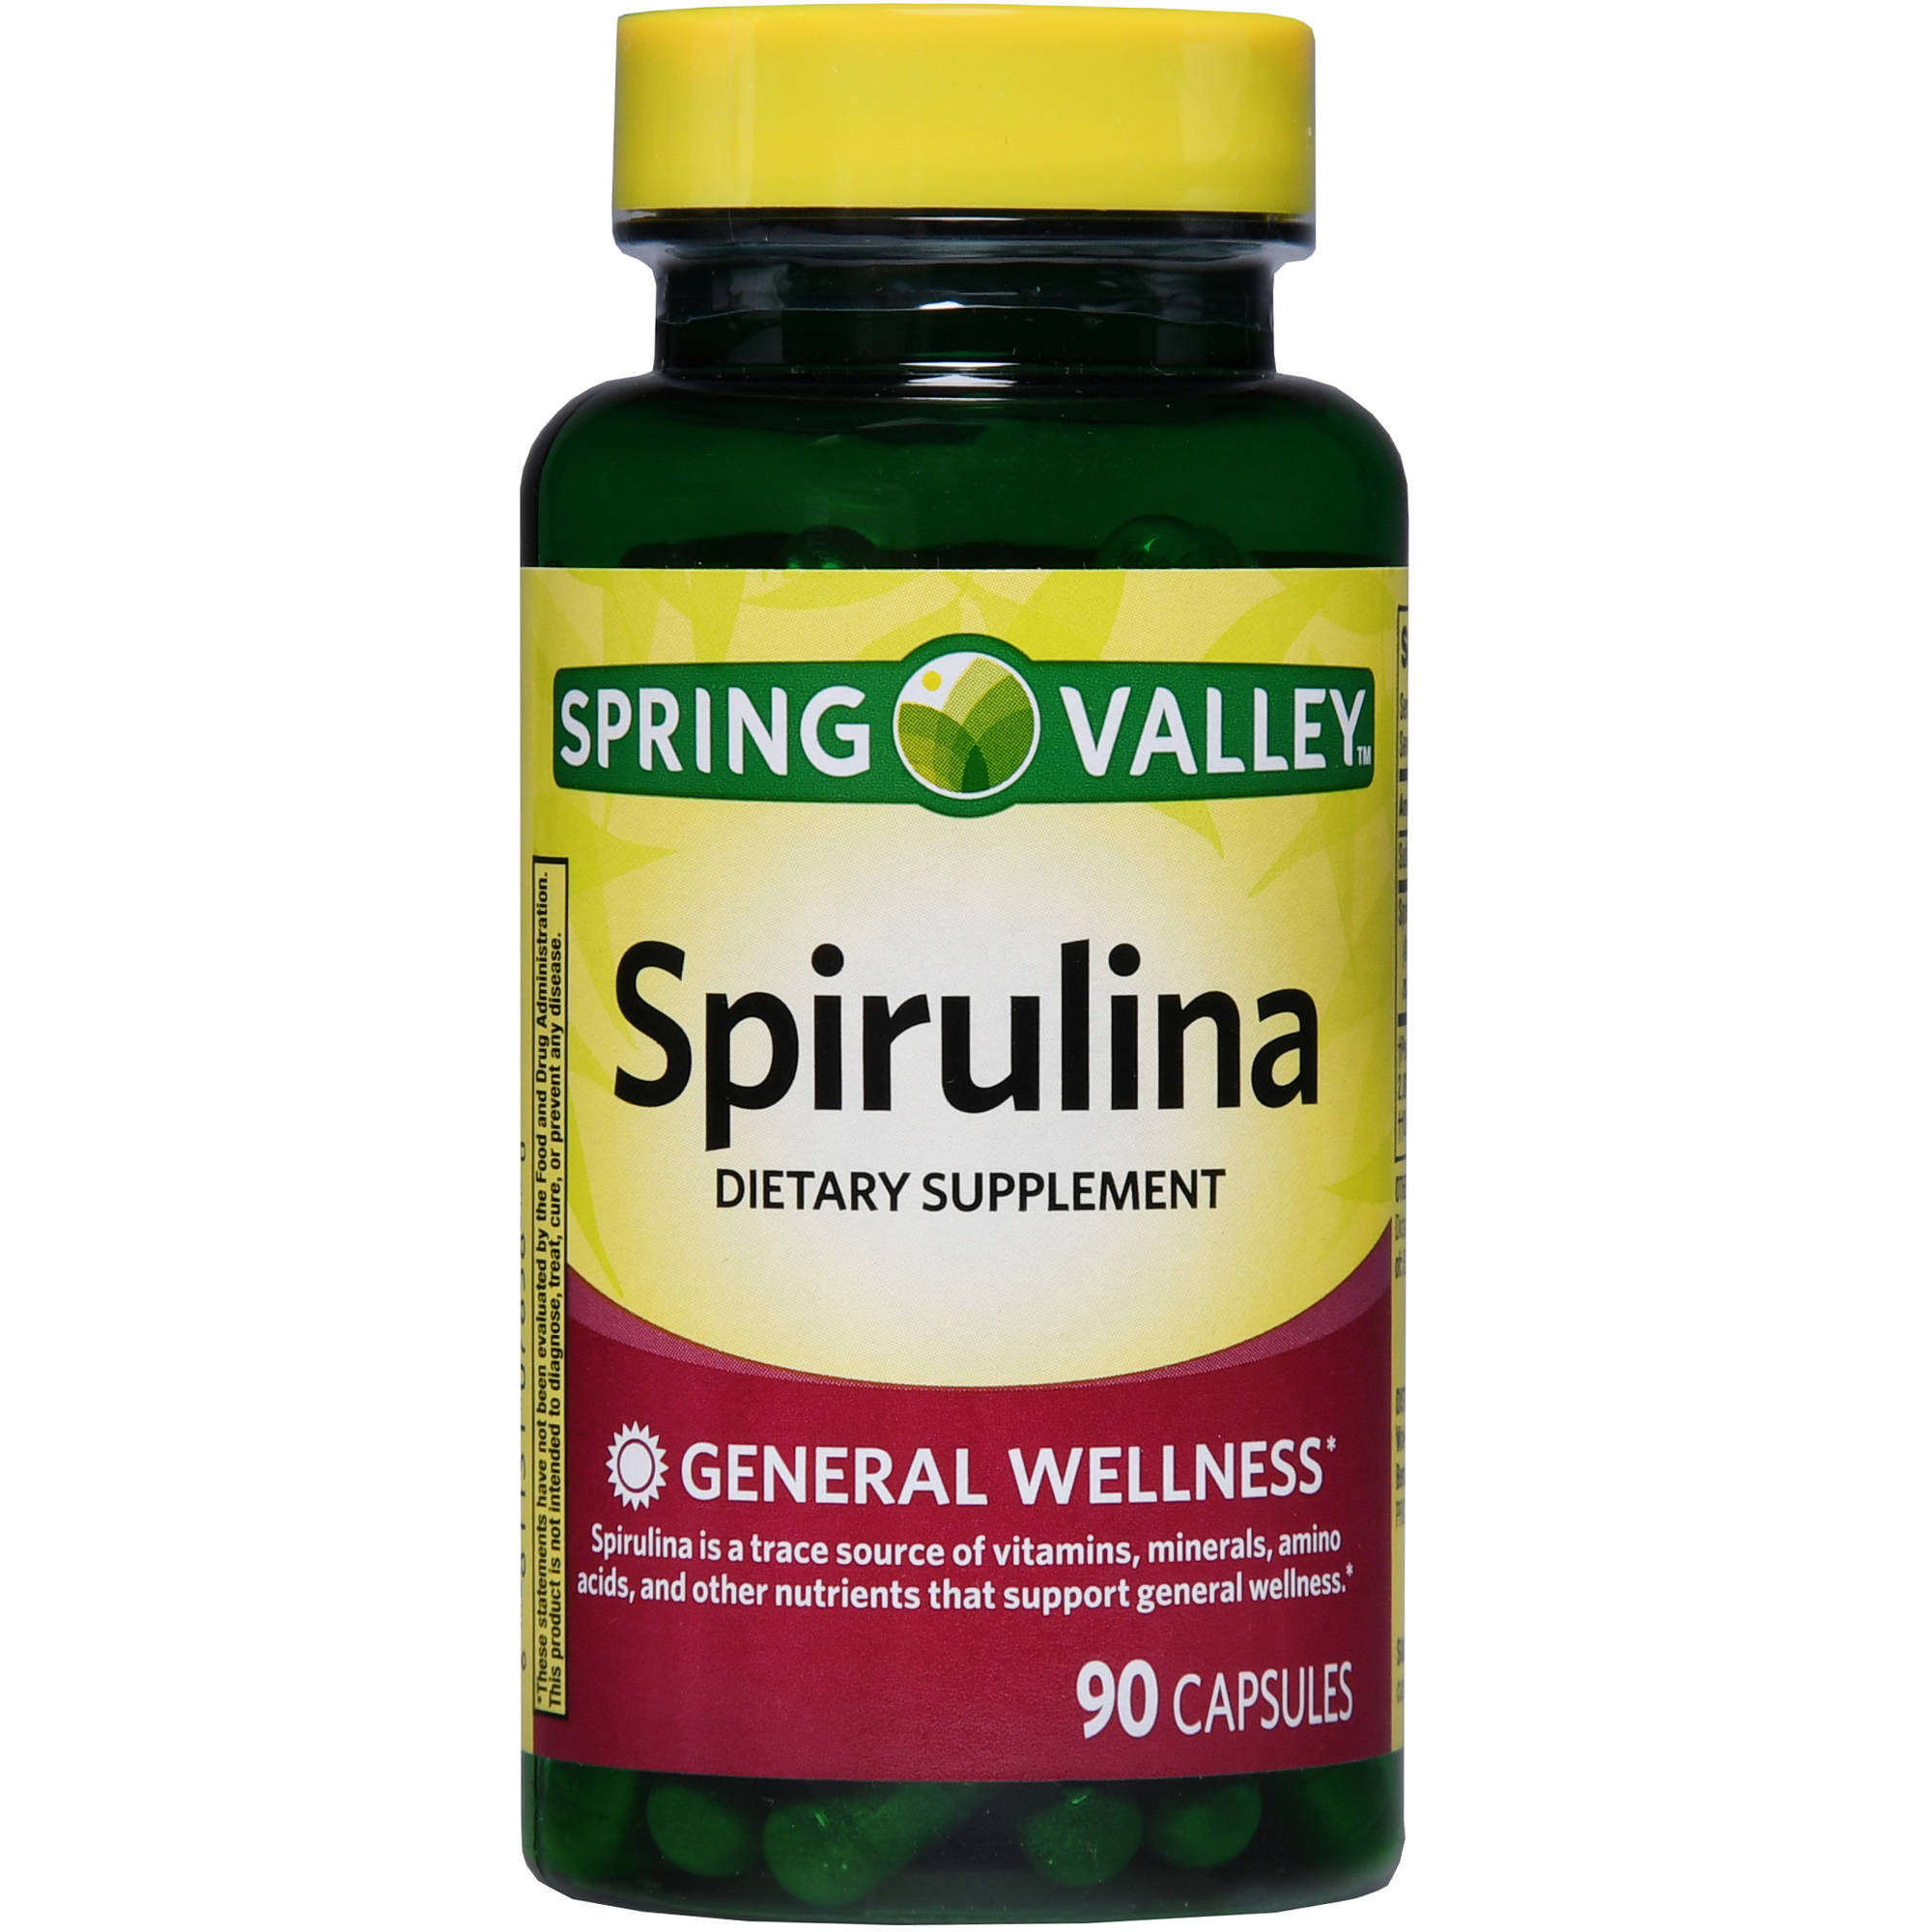 Spring Valley Spirulina Dietary Supplement Capsules, 90 count